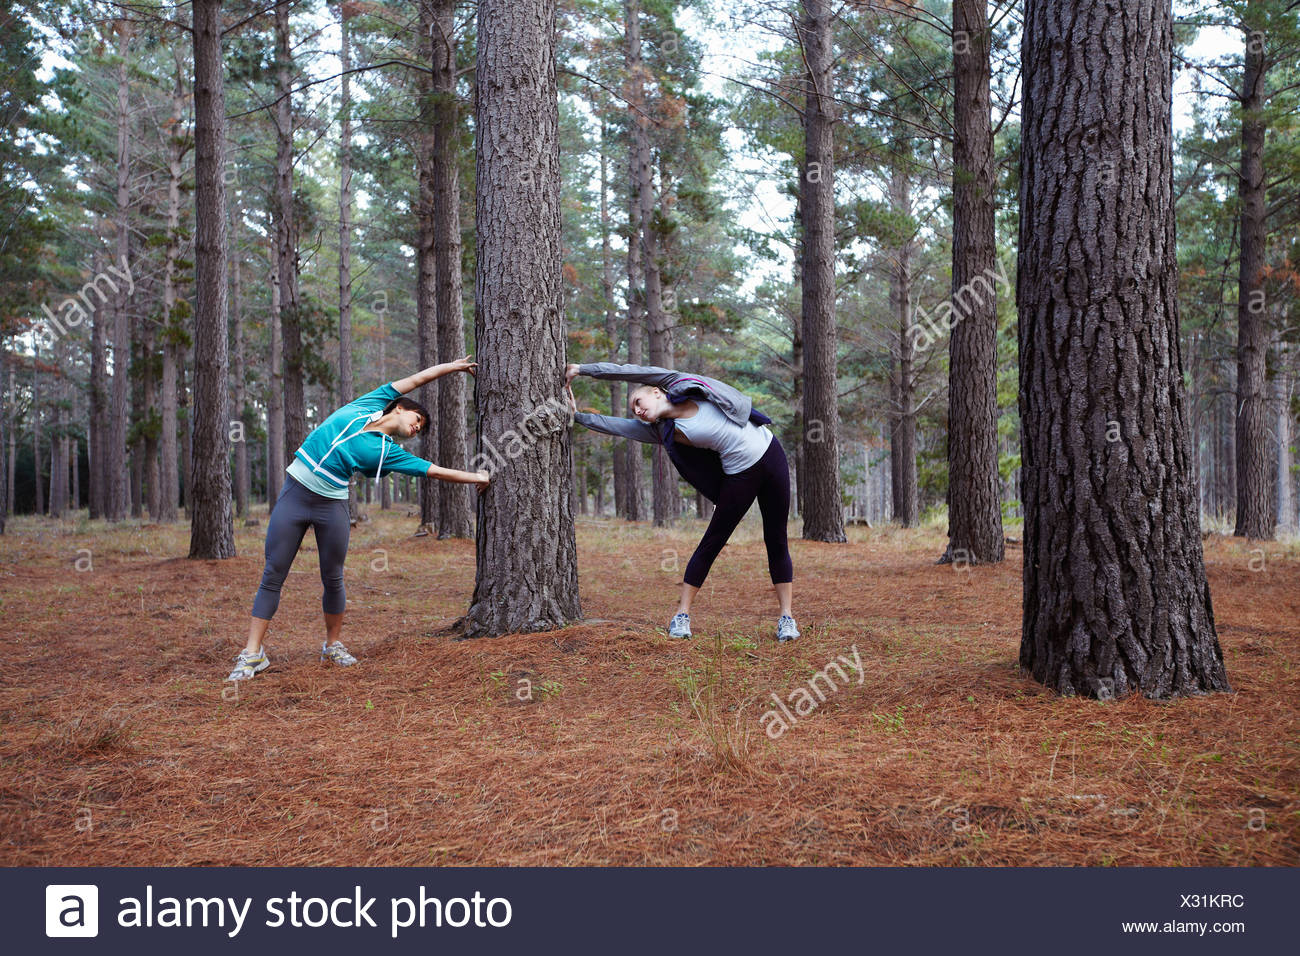 Runners stretching in forest - Stock Image